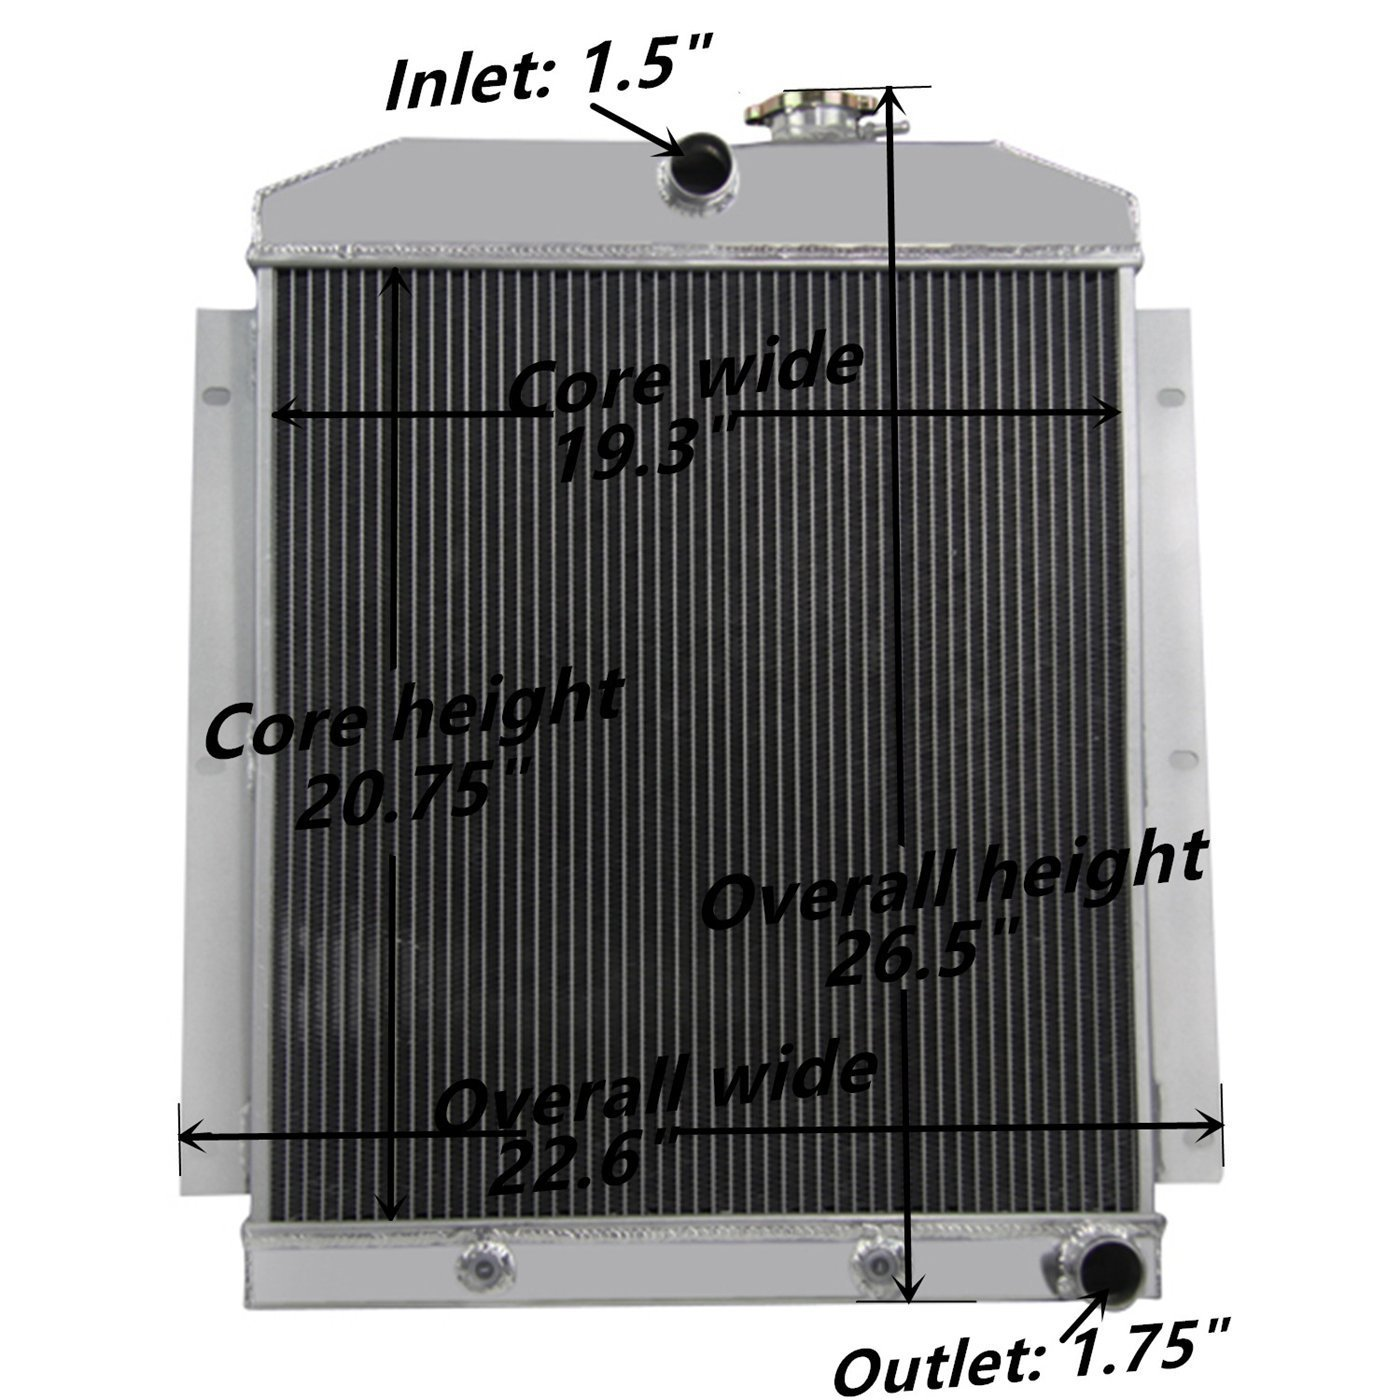 Primecooling 4 Row Core Aluminum Radiator For Chevrolet 1966 Bel Air Trucks Pickup 1947 1954 Fits 6 Cylinders Automotive